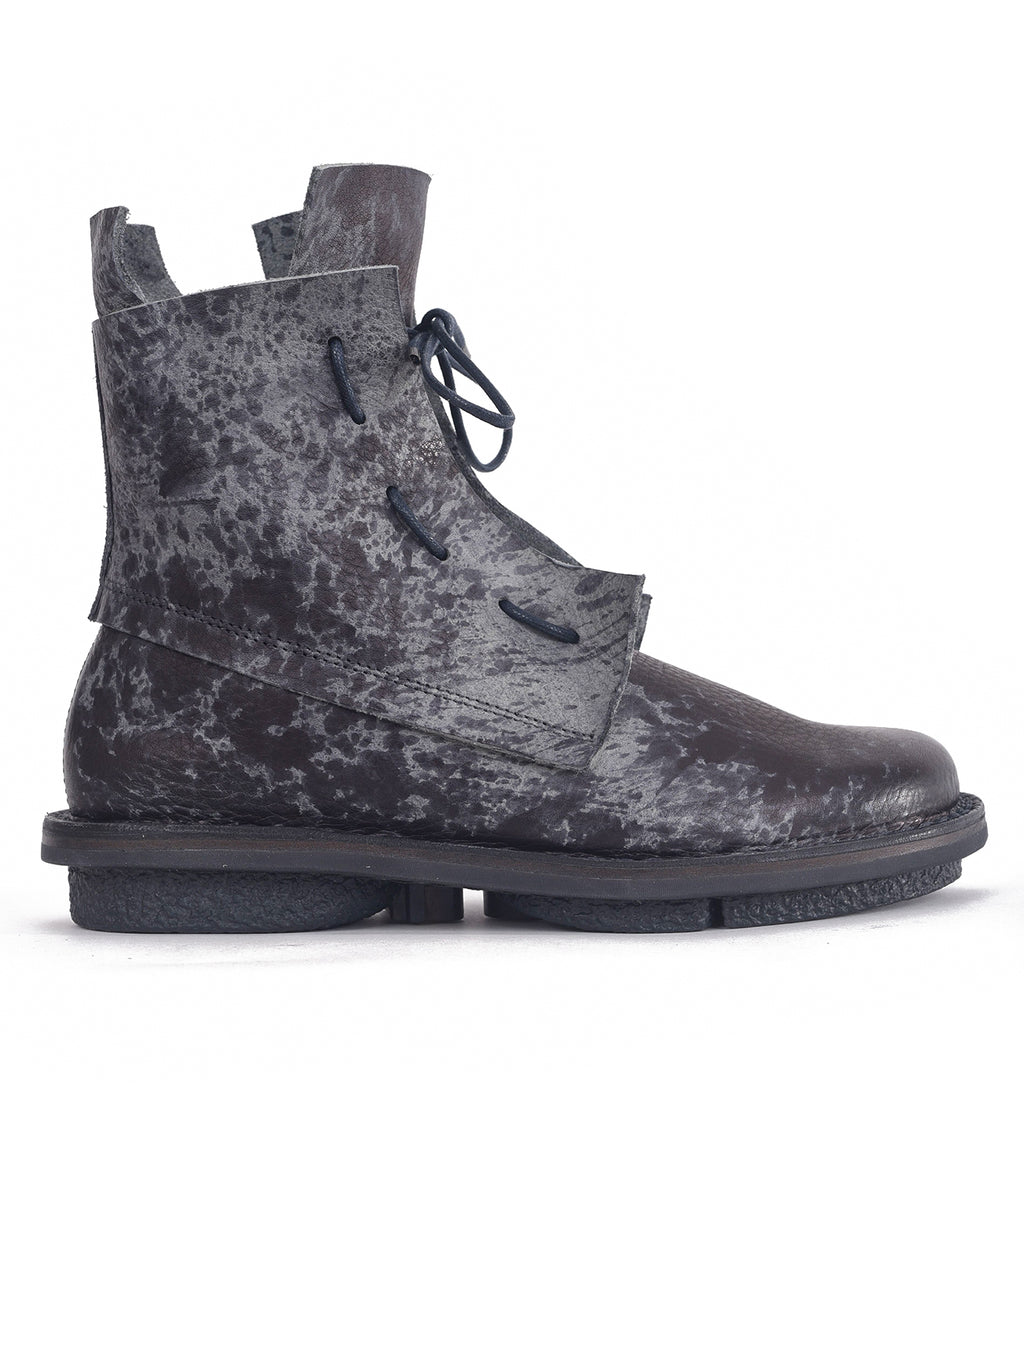 Trippen Shoes Solid Closed Boot, Gray Ash CST